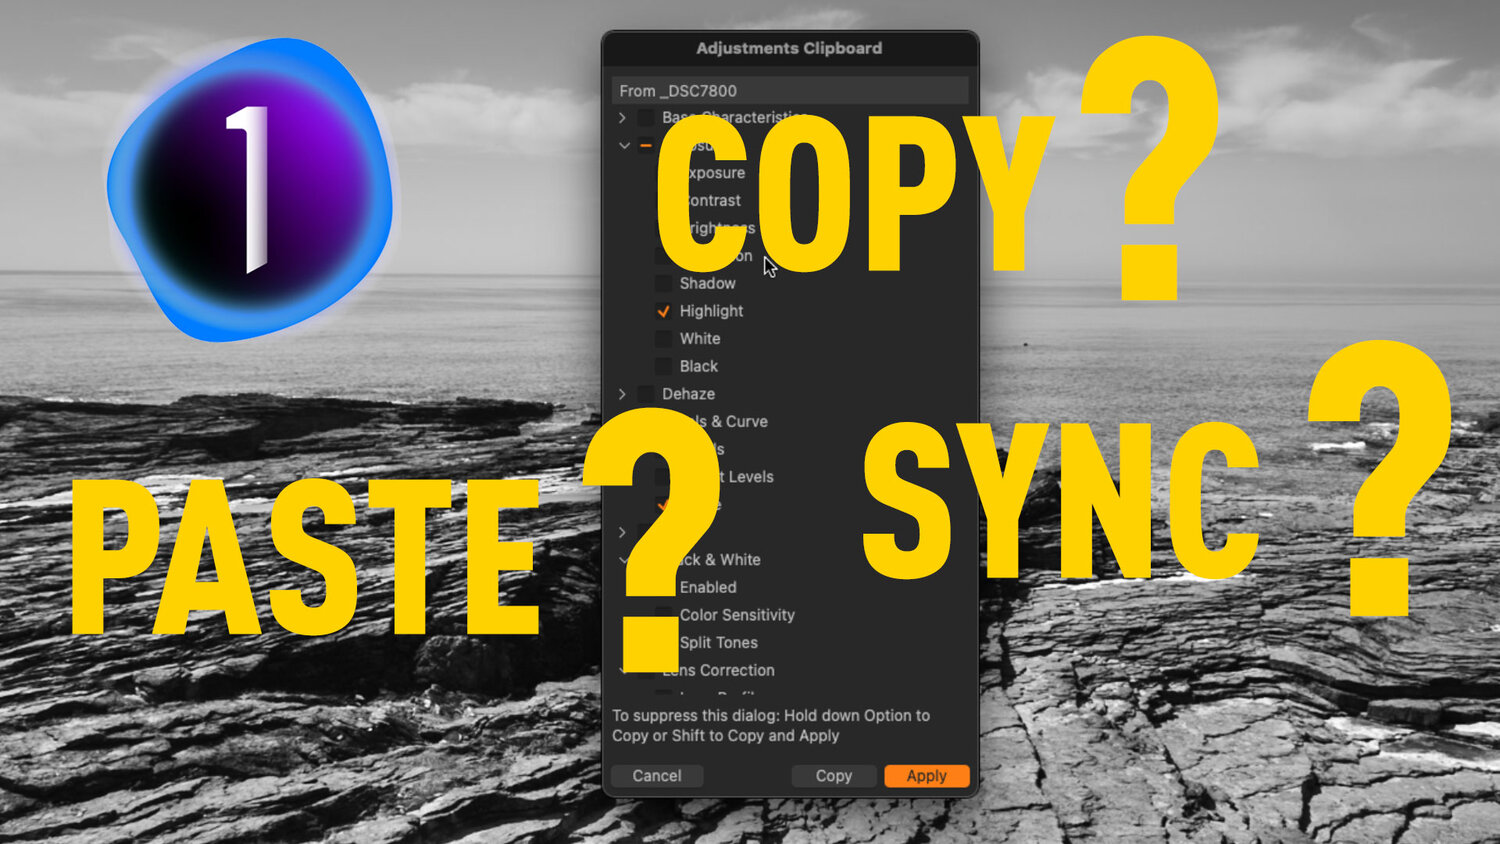 How to Sync Settings in Capture One (How to use the Copy and Apply Adjustments Tool)